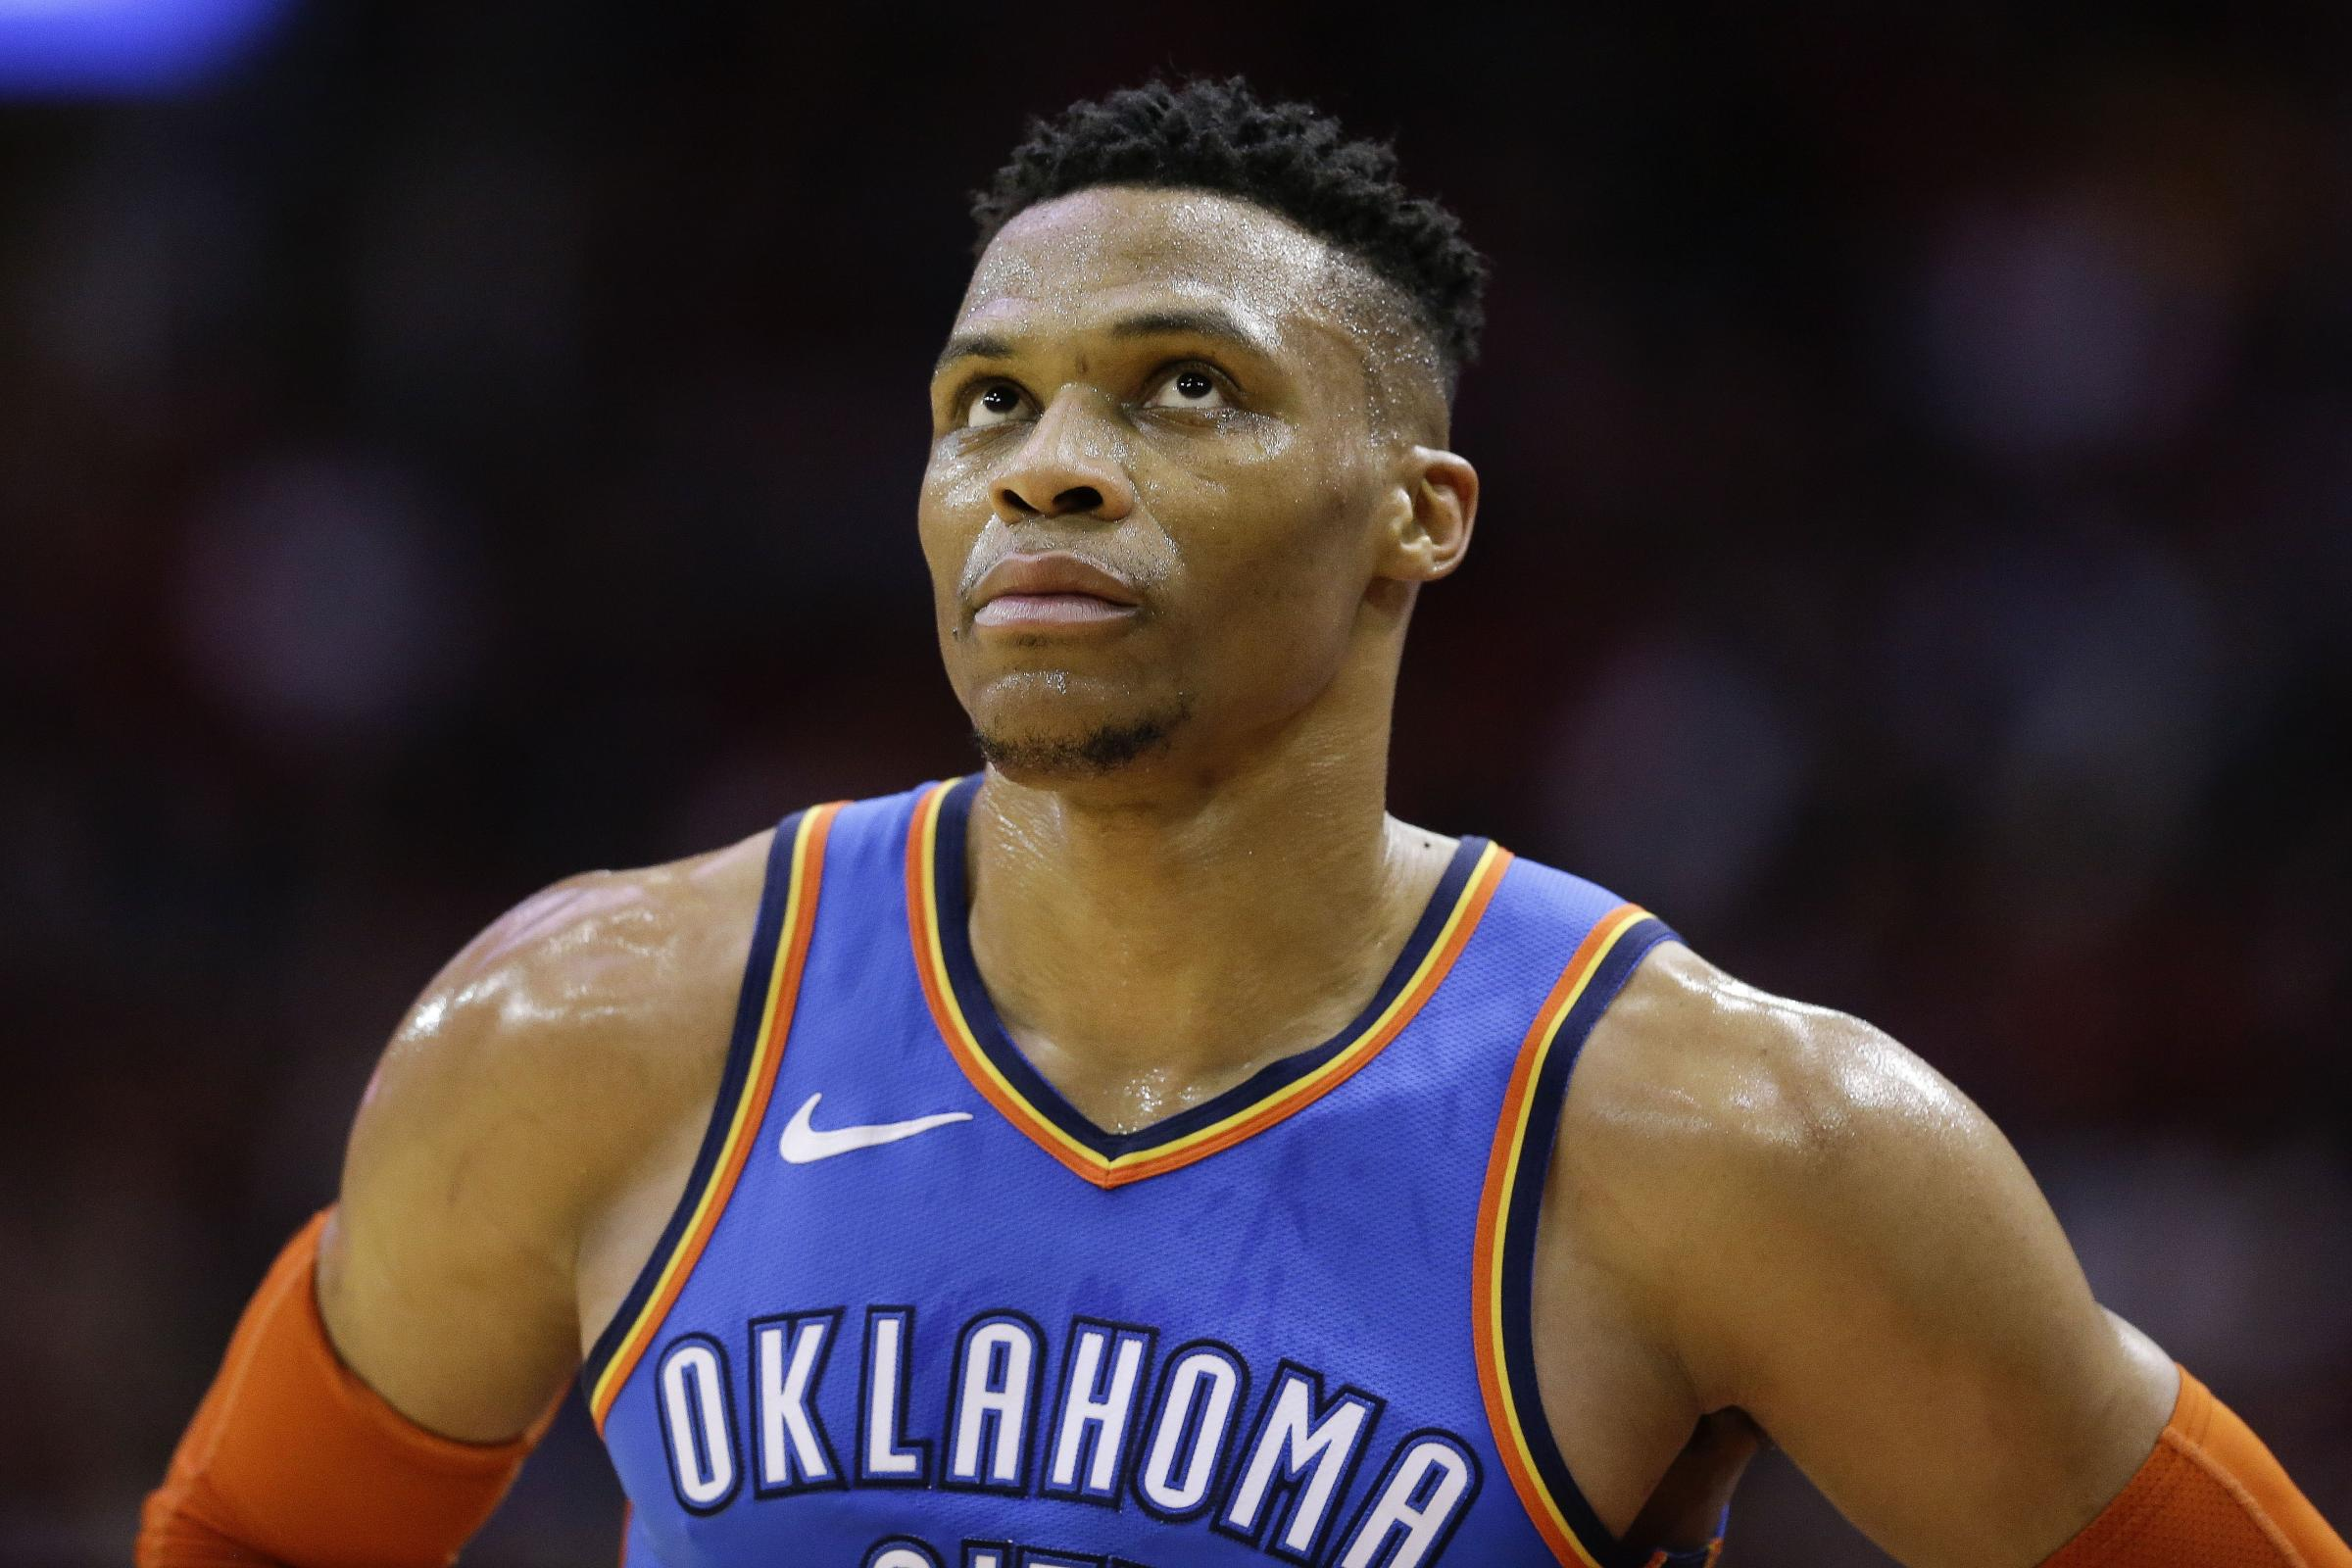 Oklahoma City Thunder guard Russell Westbrook set a new NBA record